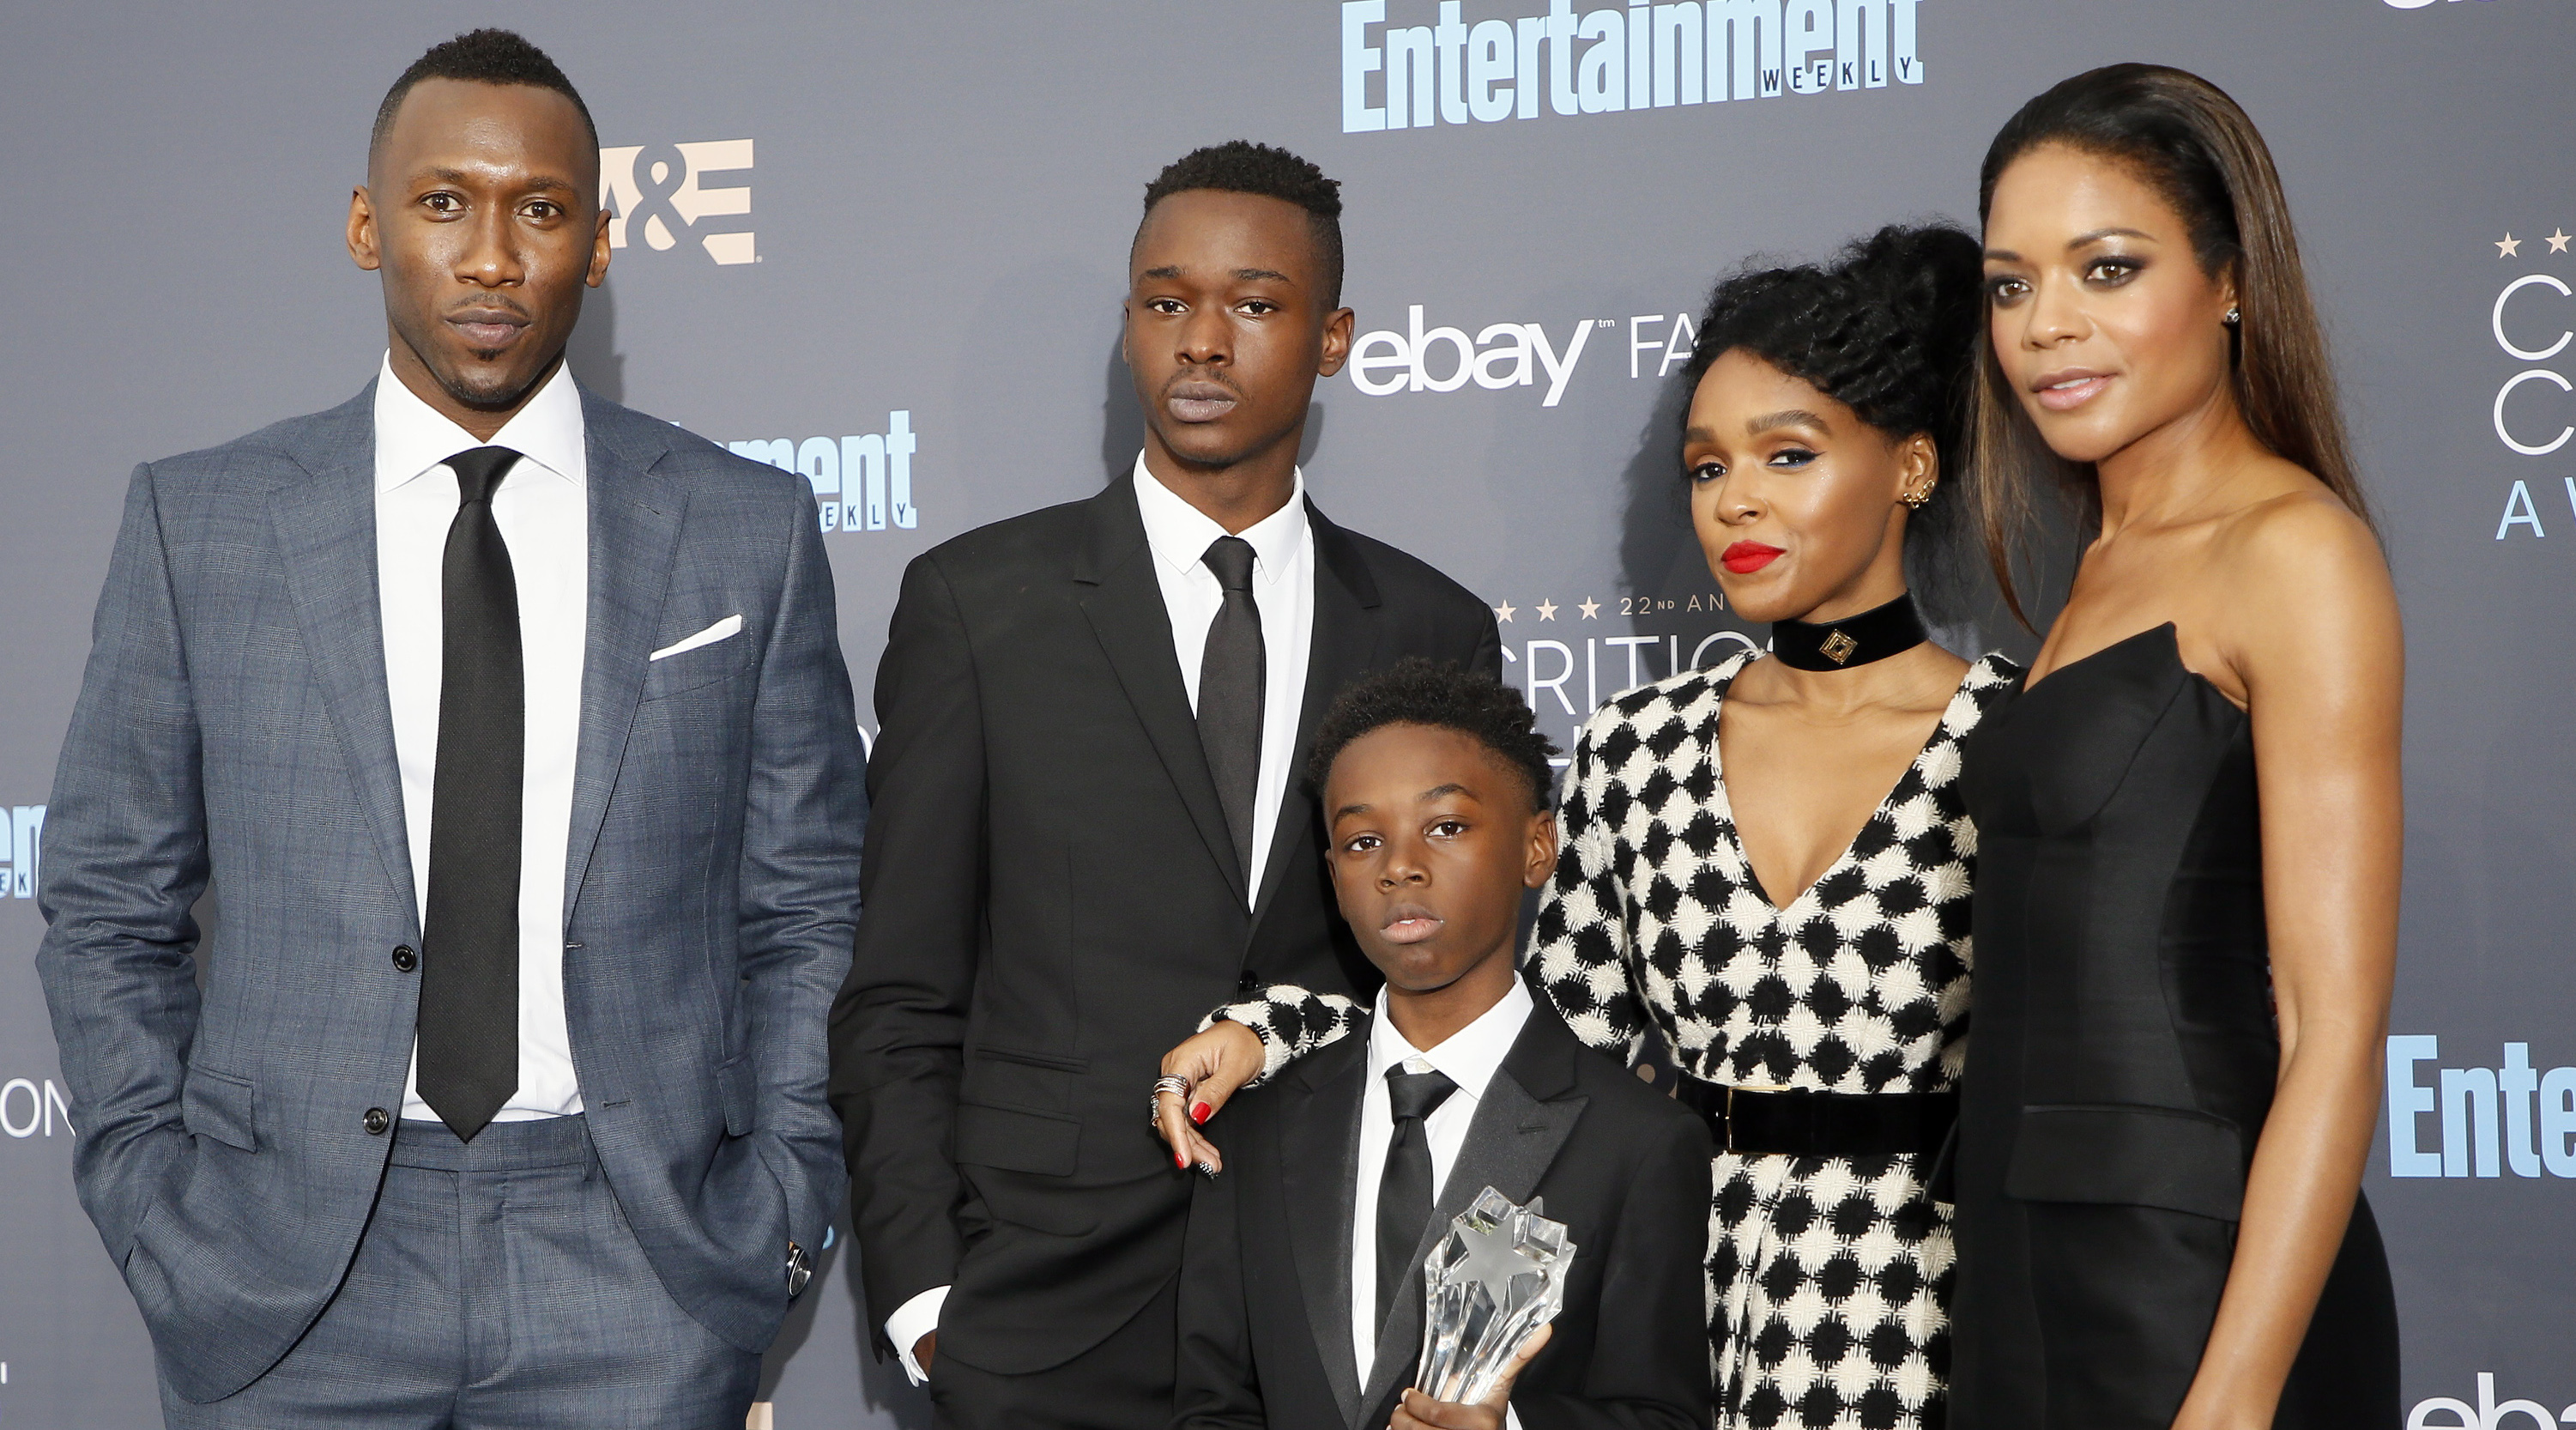 (L-R) Actors Mahershala Ali, Ashton Sanders, Alex R. Hibbert, Janelle Monae and Naomie Harris pose backstage with their award for Best Acting Ensemble for 'Moonlight' during the 22nd Annual Critics' Choice Awards in Santa Monica, California, U.S., December 11, 2016.